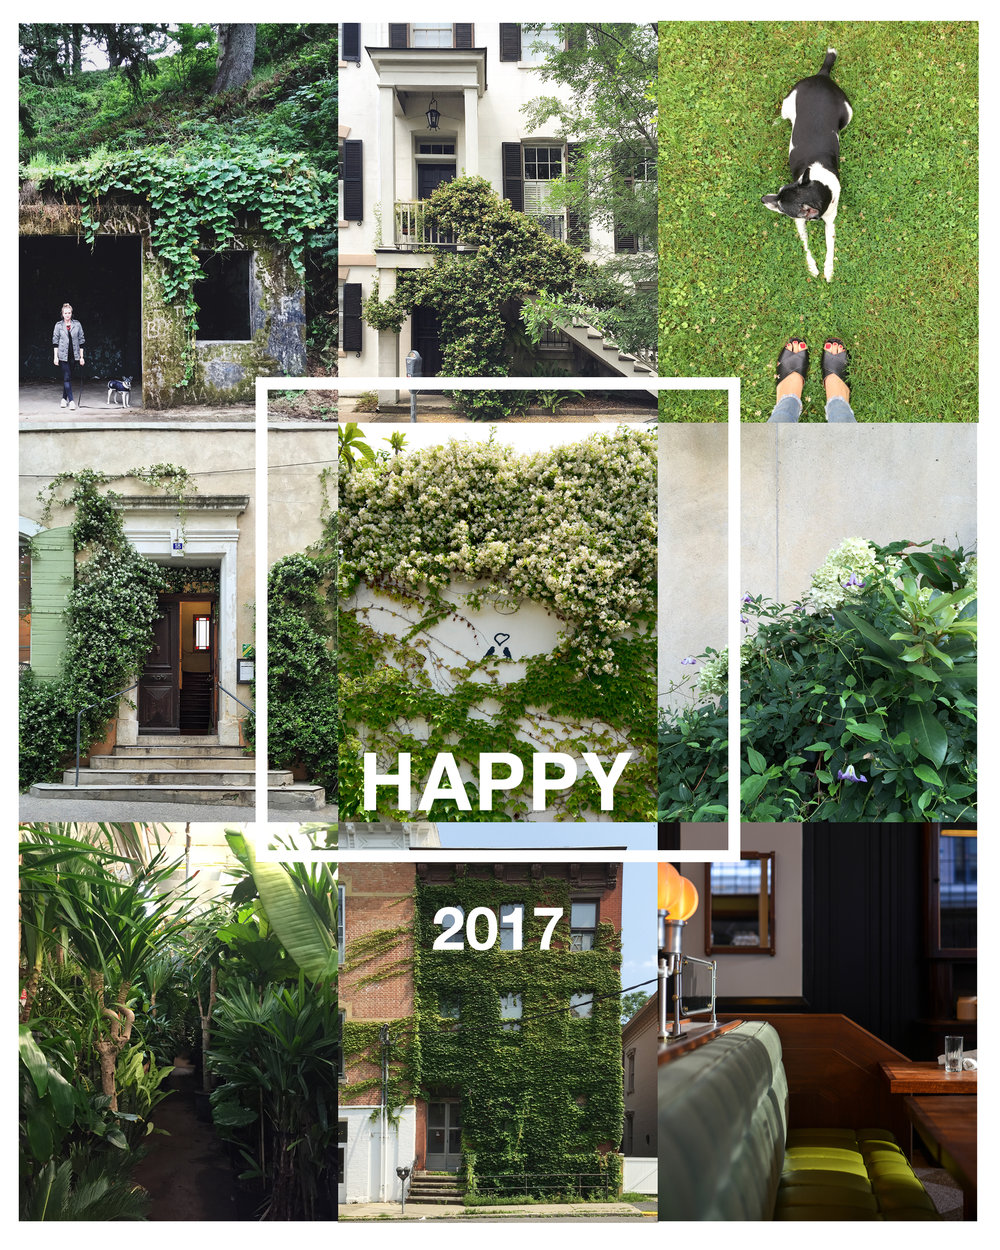 My New Years Card for 2017 | photos by Lauren L Caron © 2017